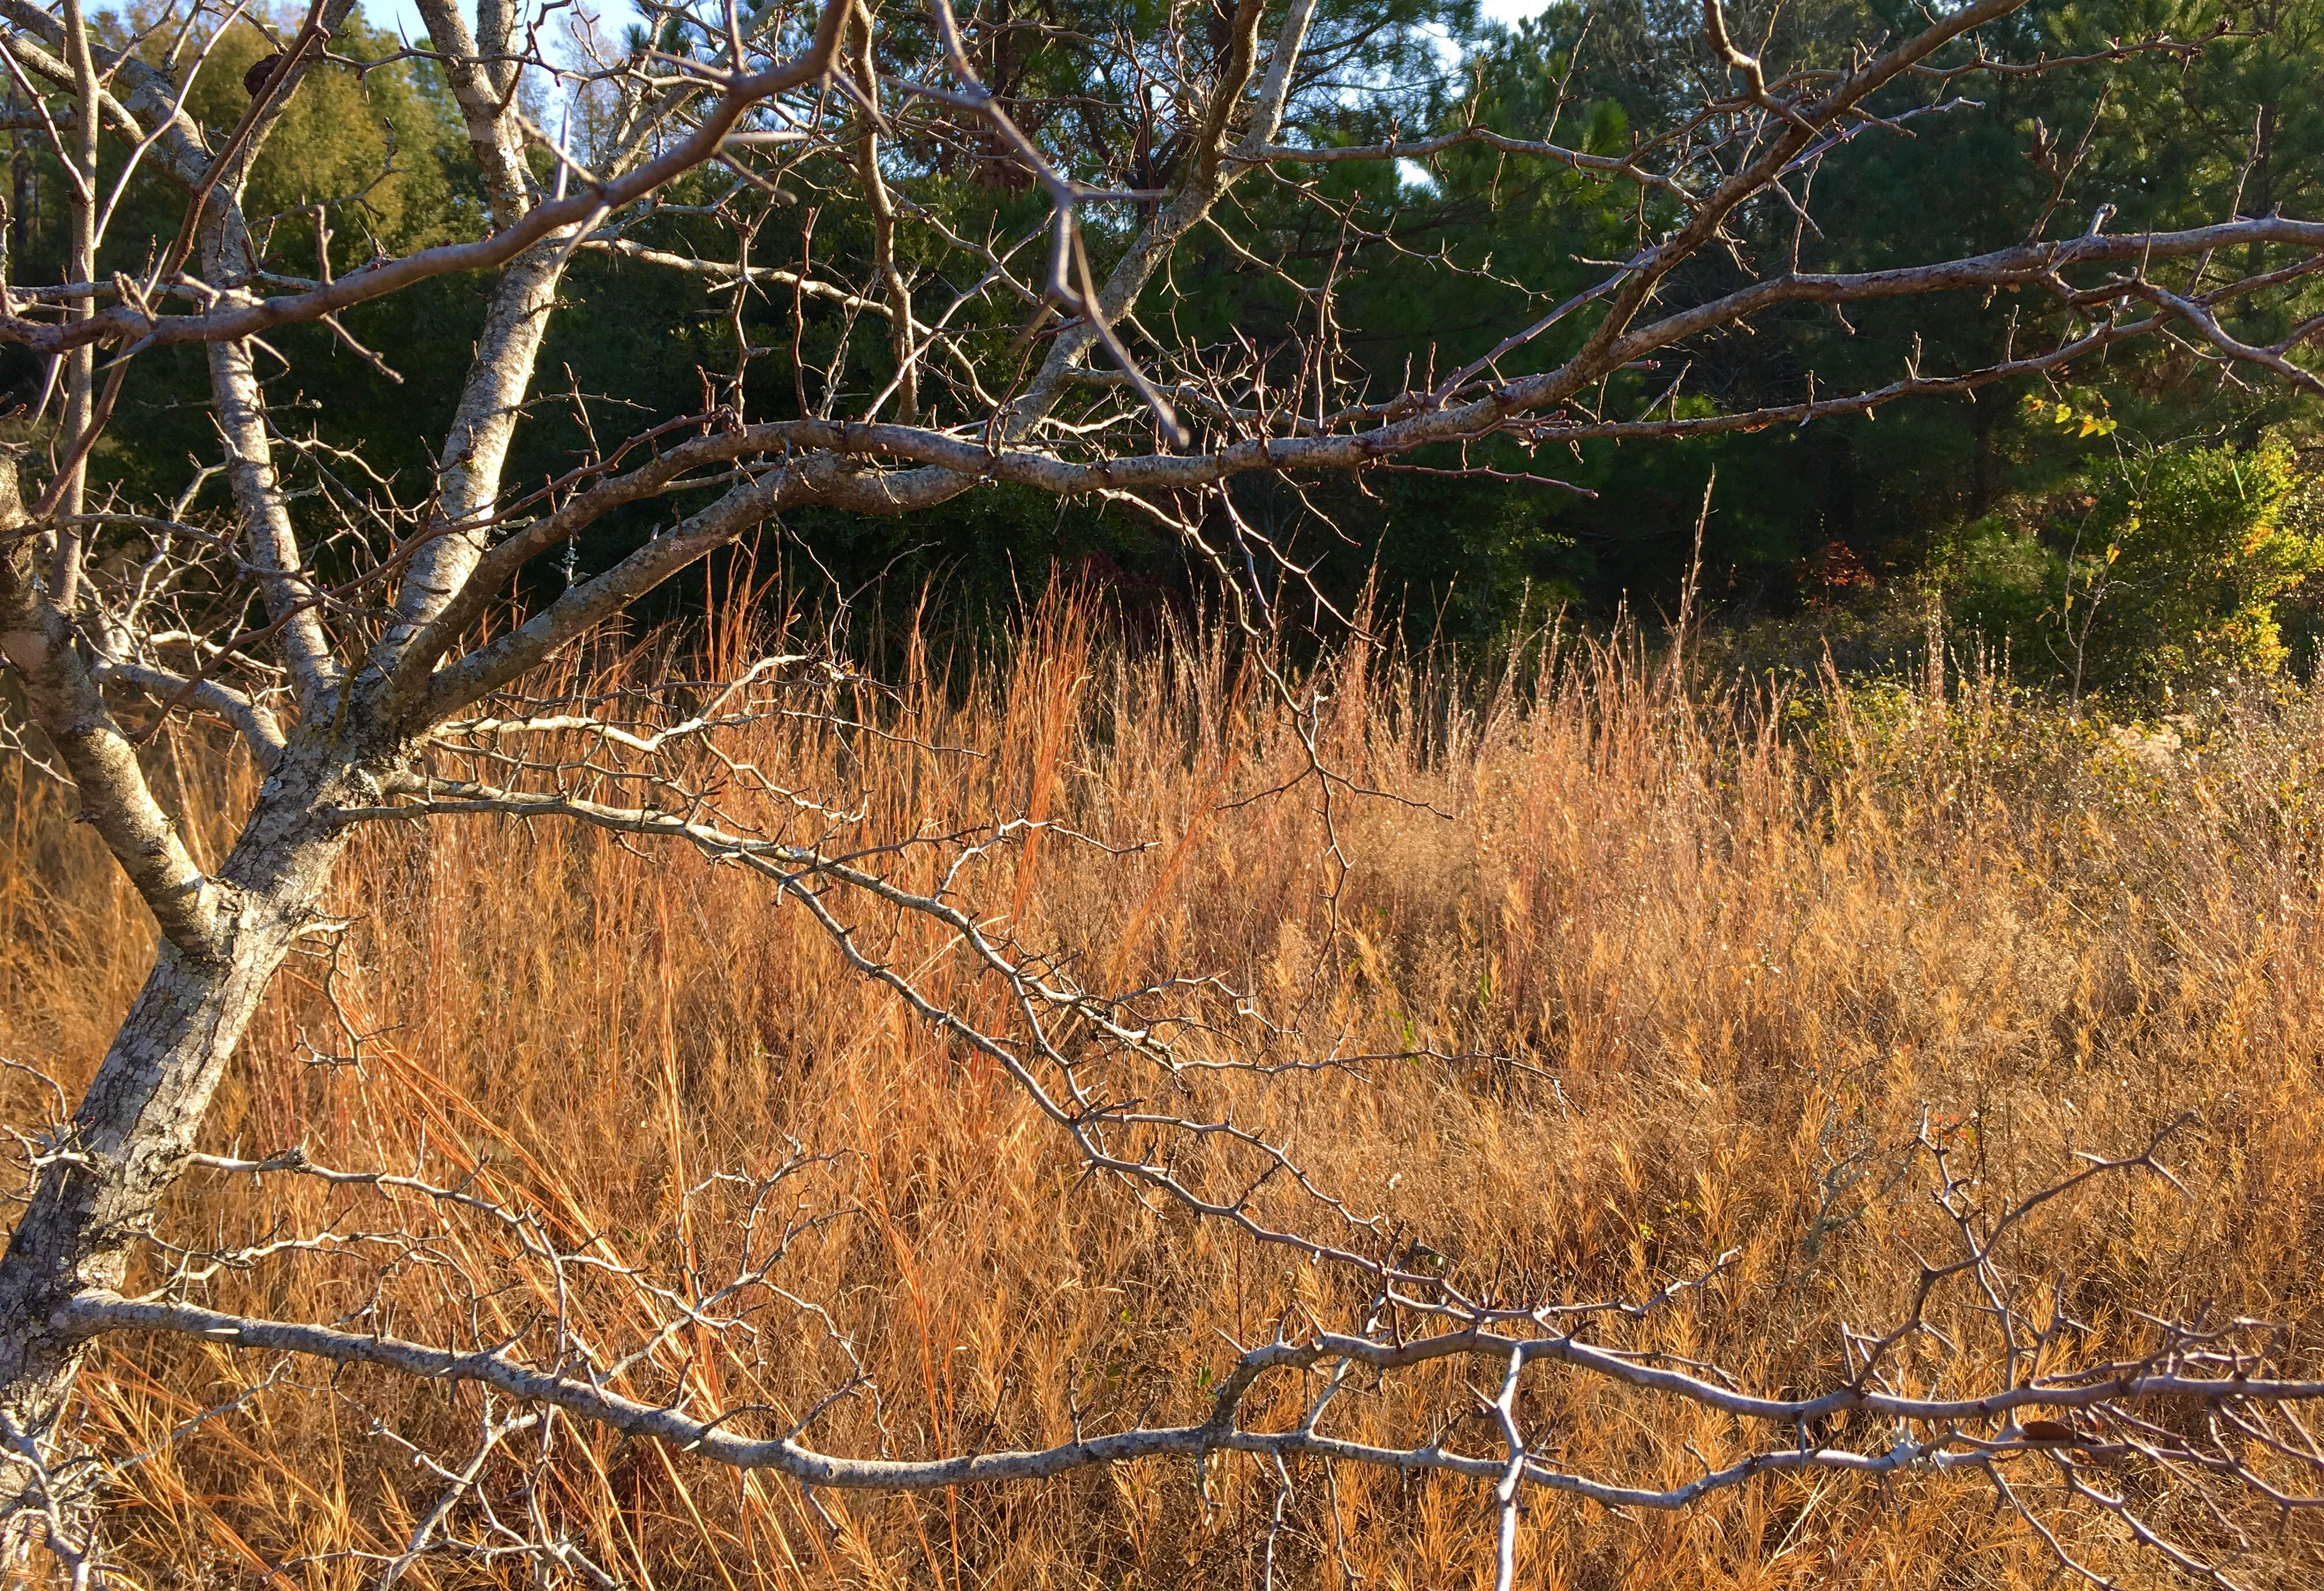 Haw Tree in the grassy spot in the woods.